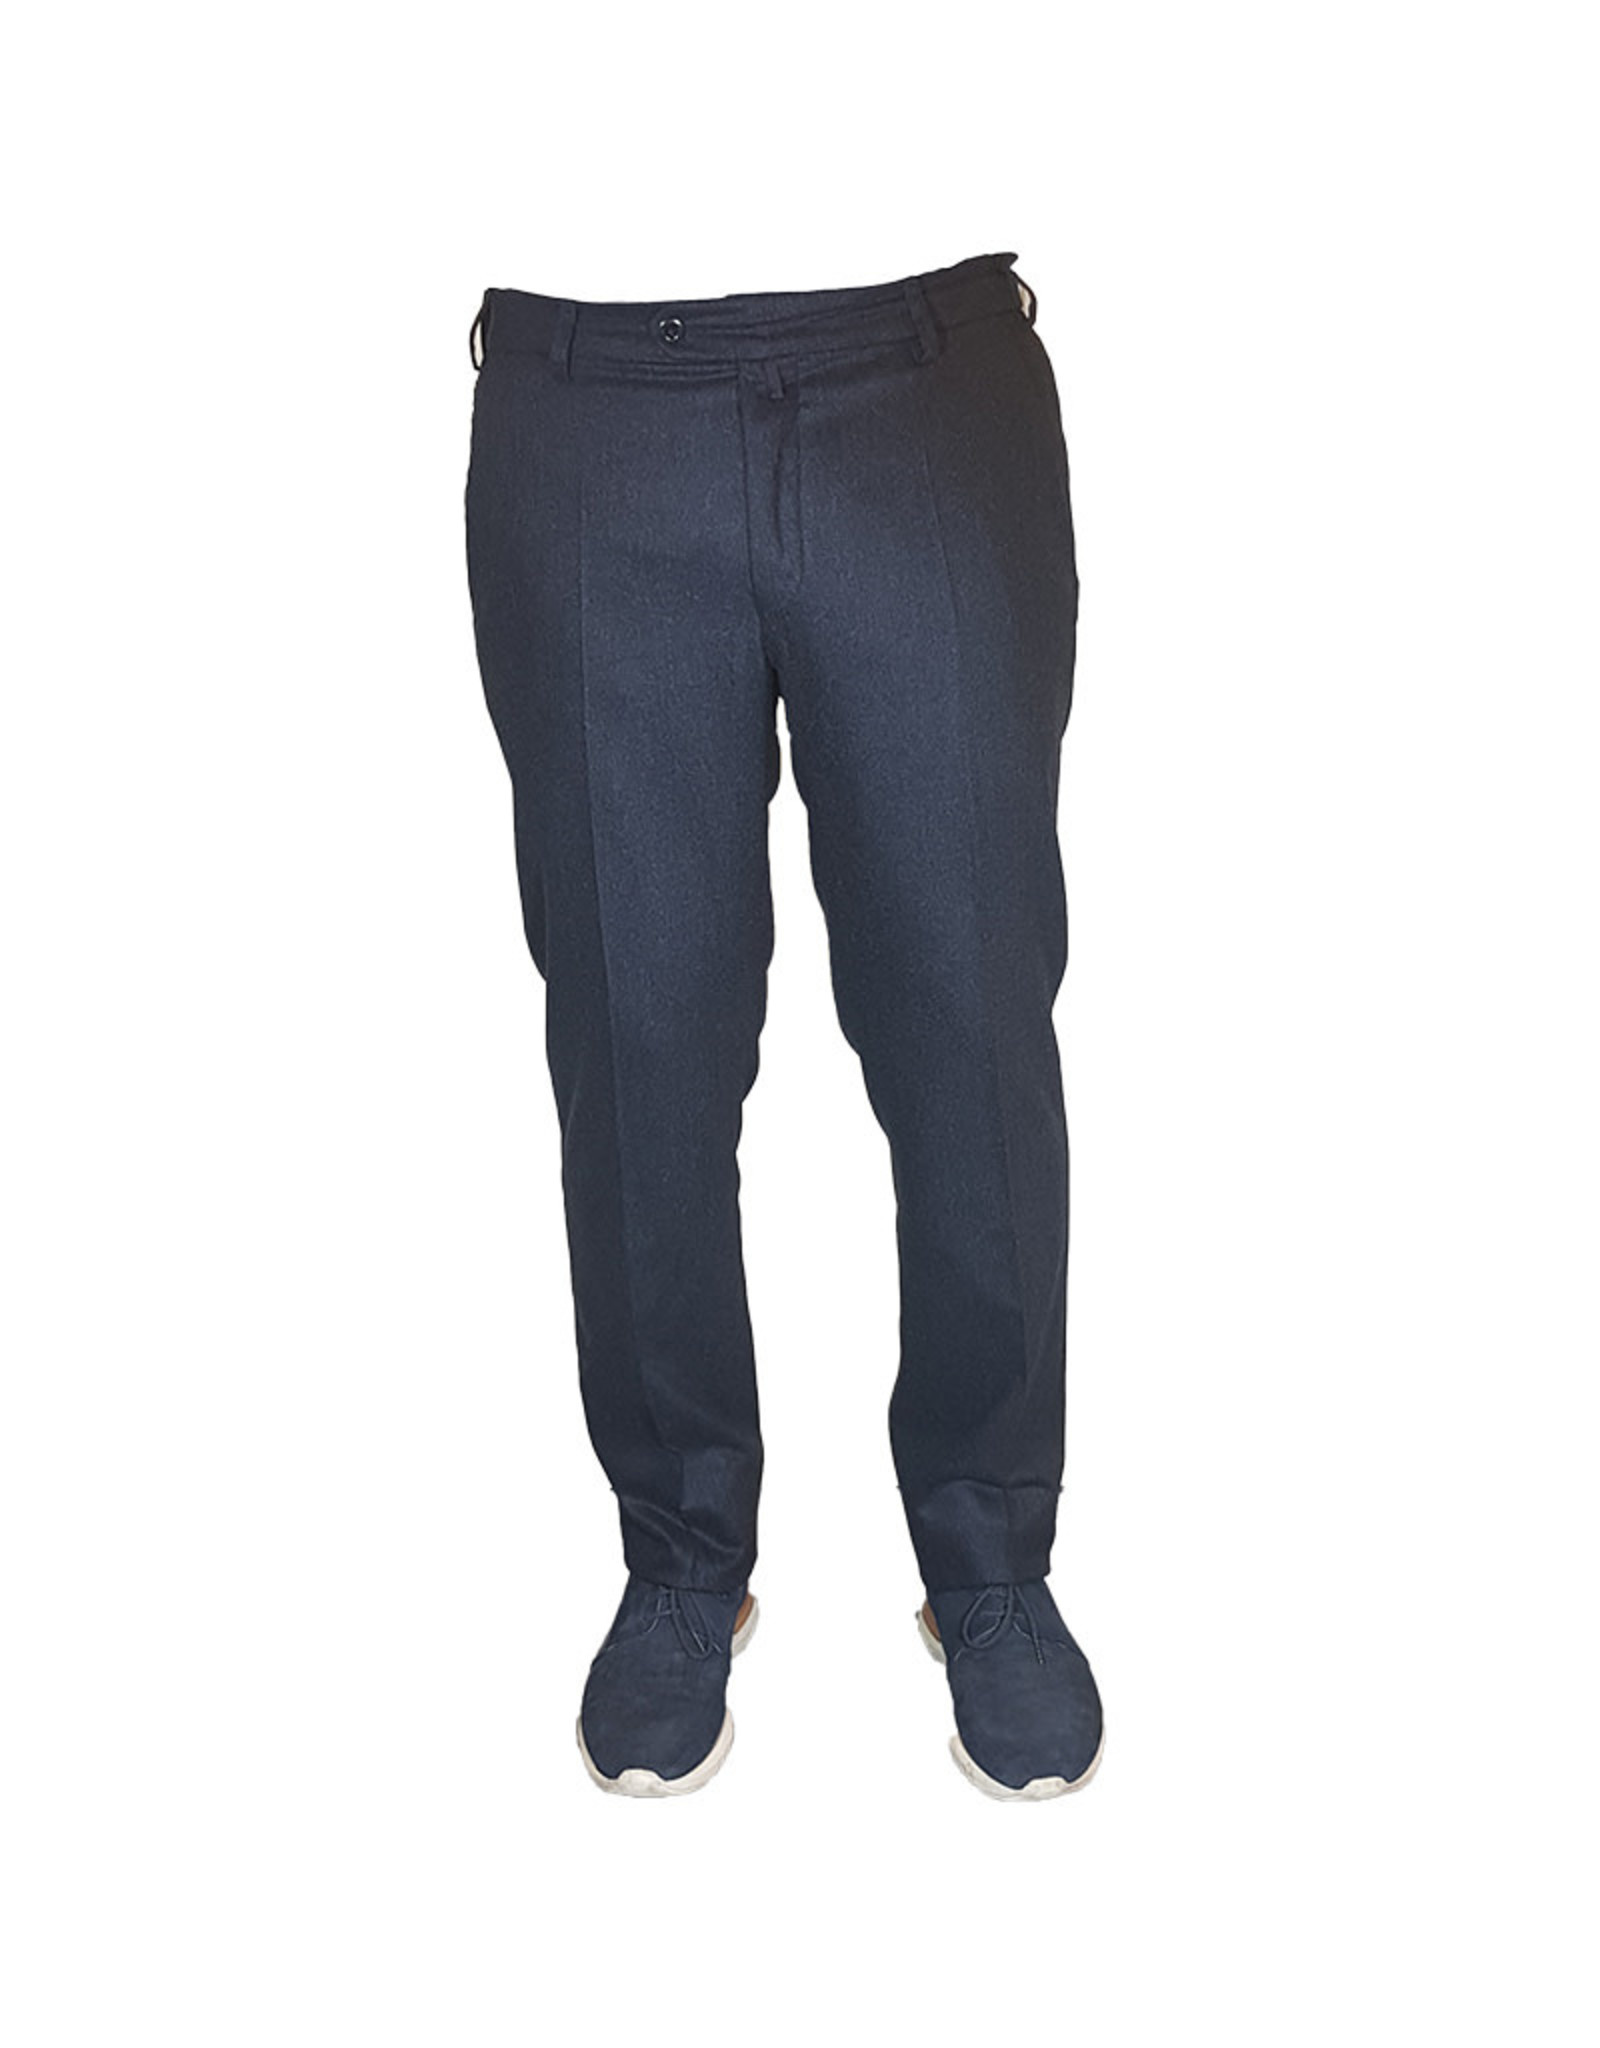 Meyer Exclusive Meyer Exclusive broek wol blauw Bonn 8531/18